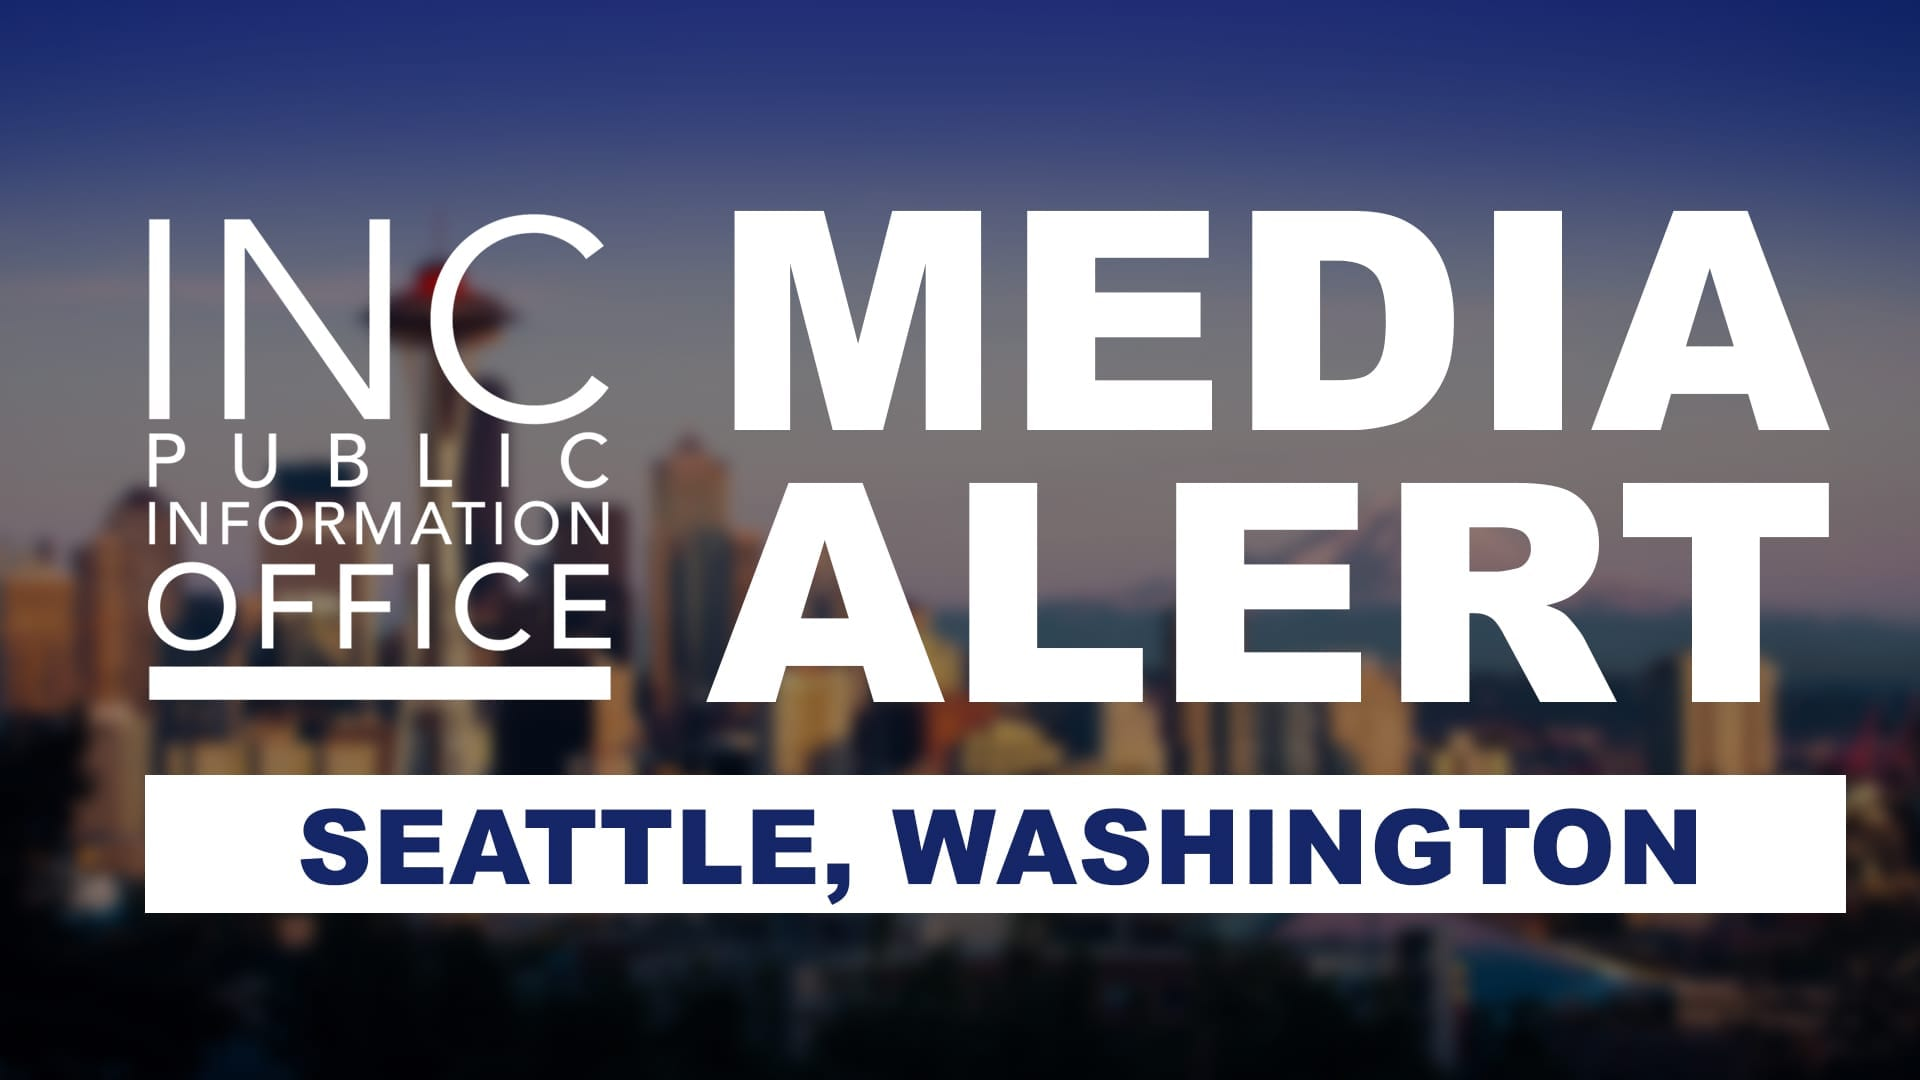 Seattle city scape with text: INC Public Information Office, Media Alert, Seattle Washington